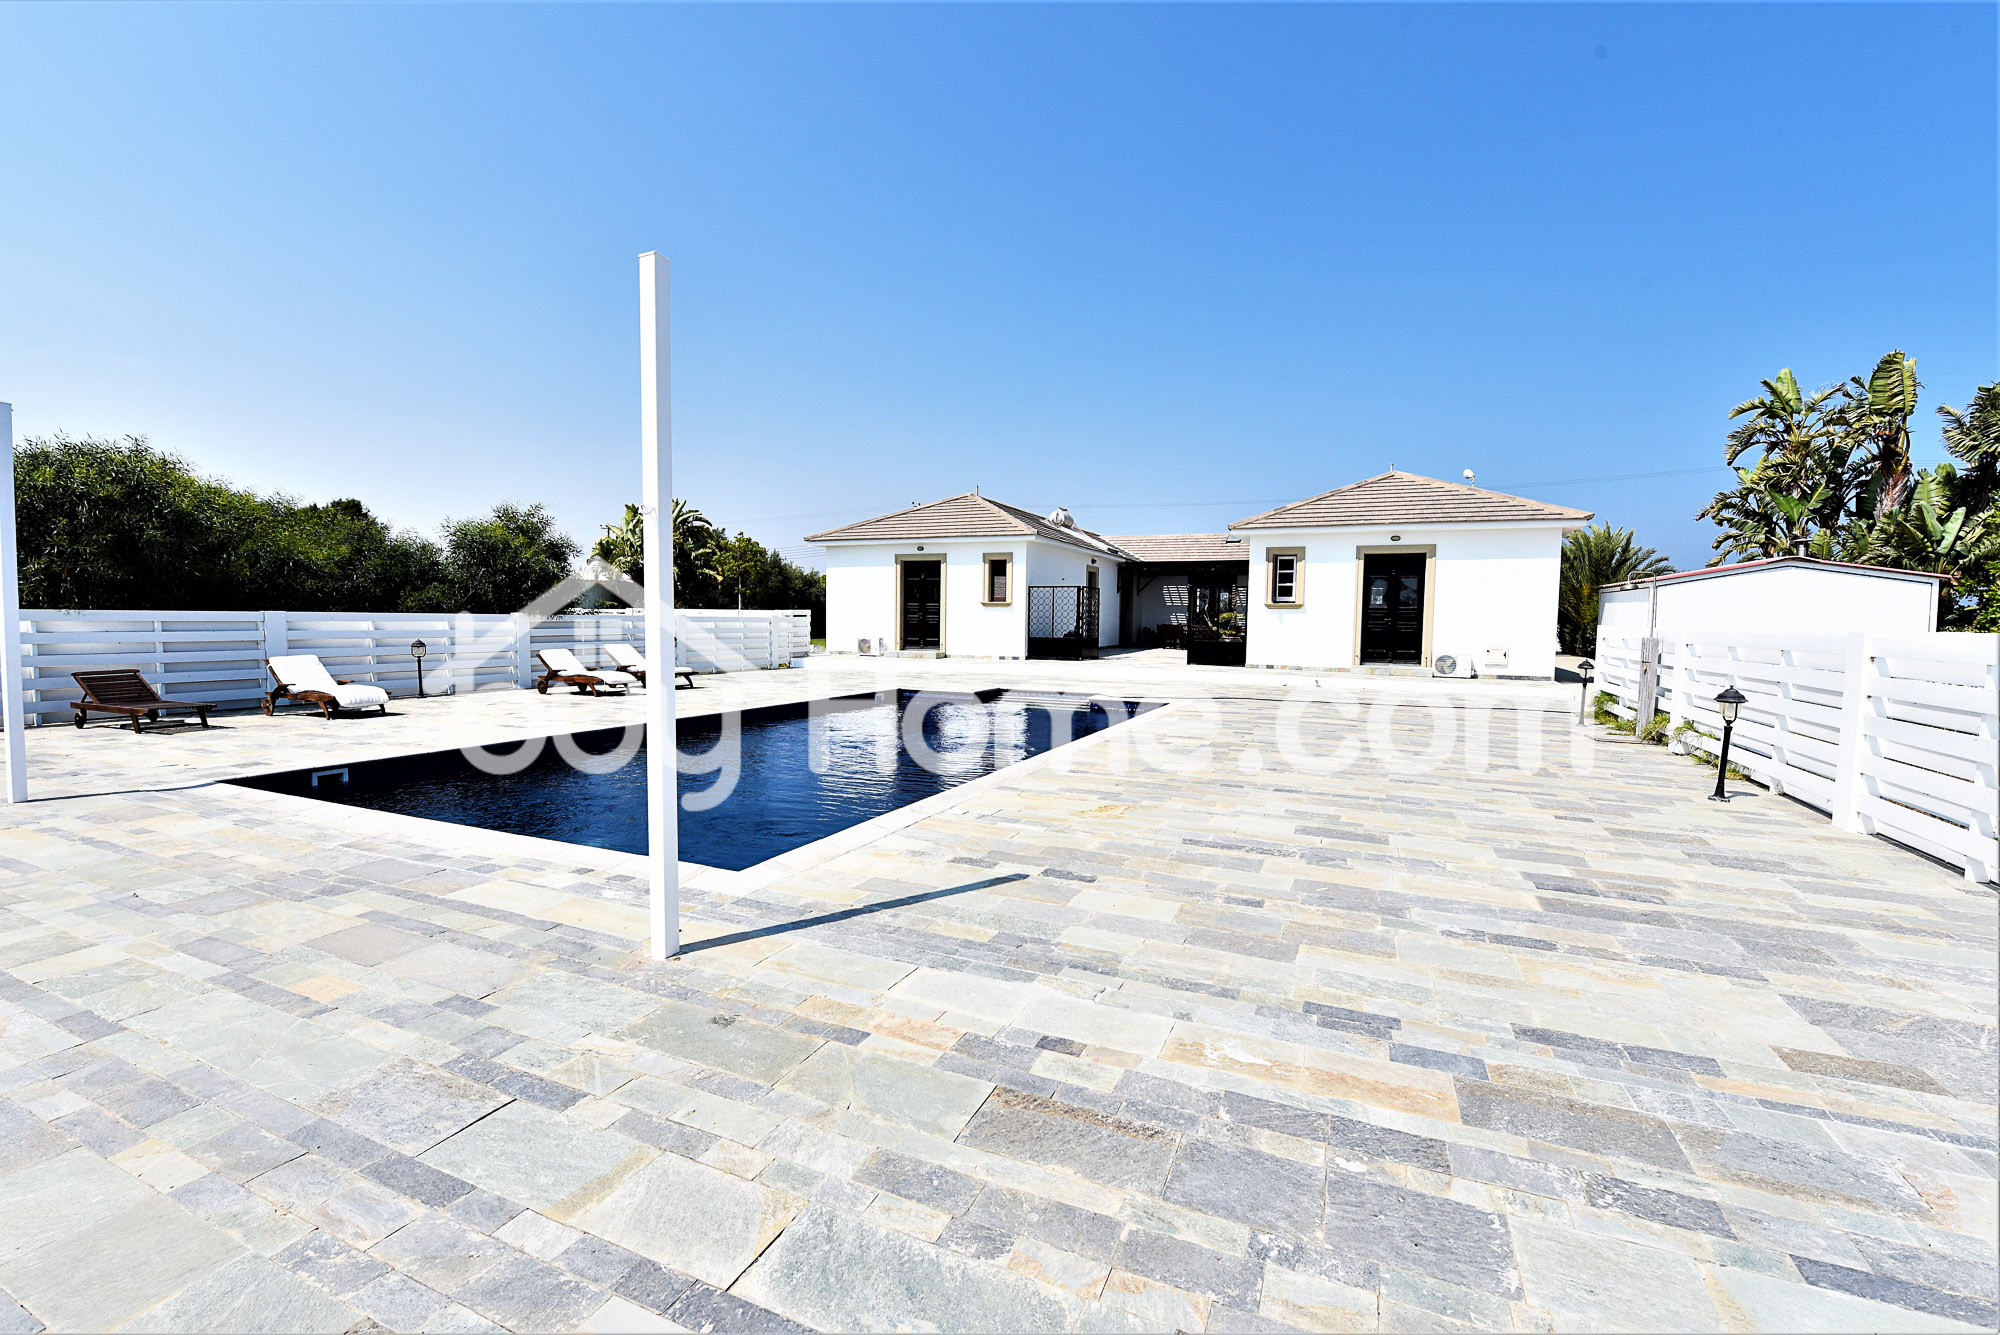 4 Bedroom Unique Bungalow with Pool   BuyHome